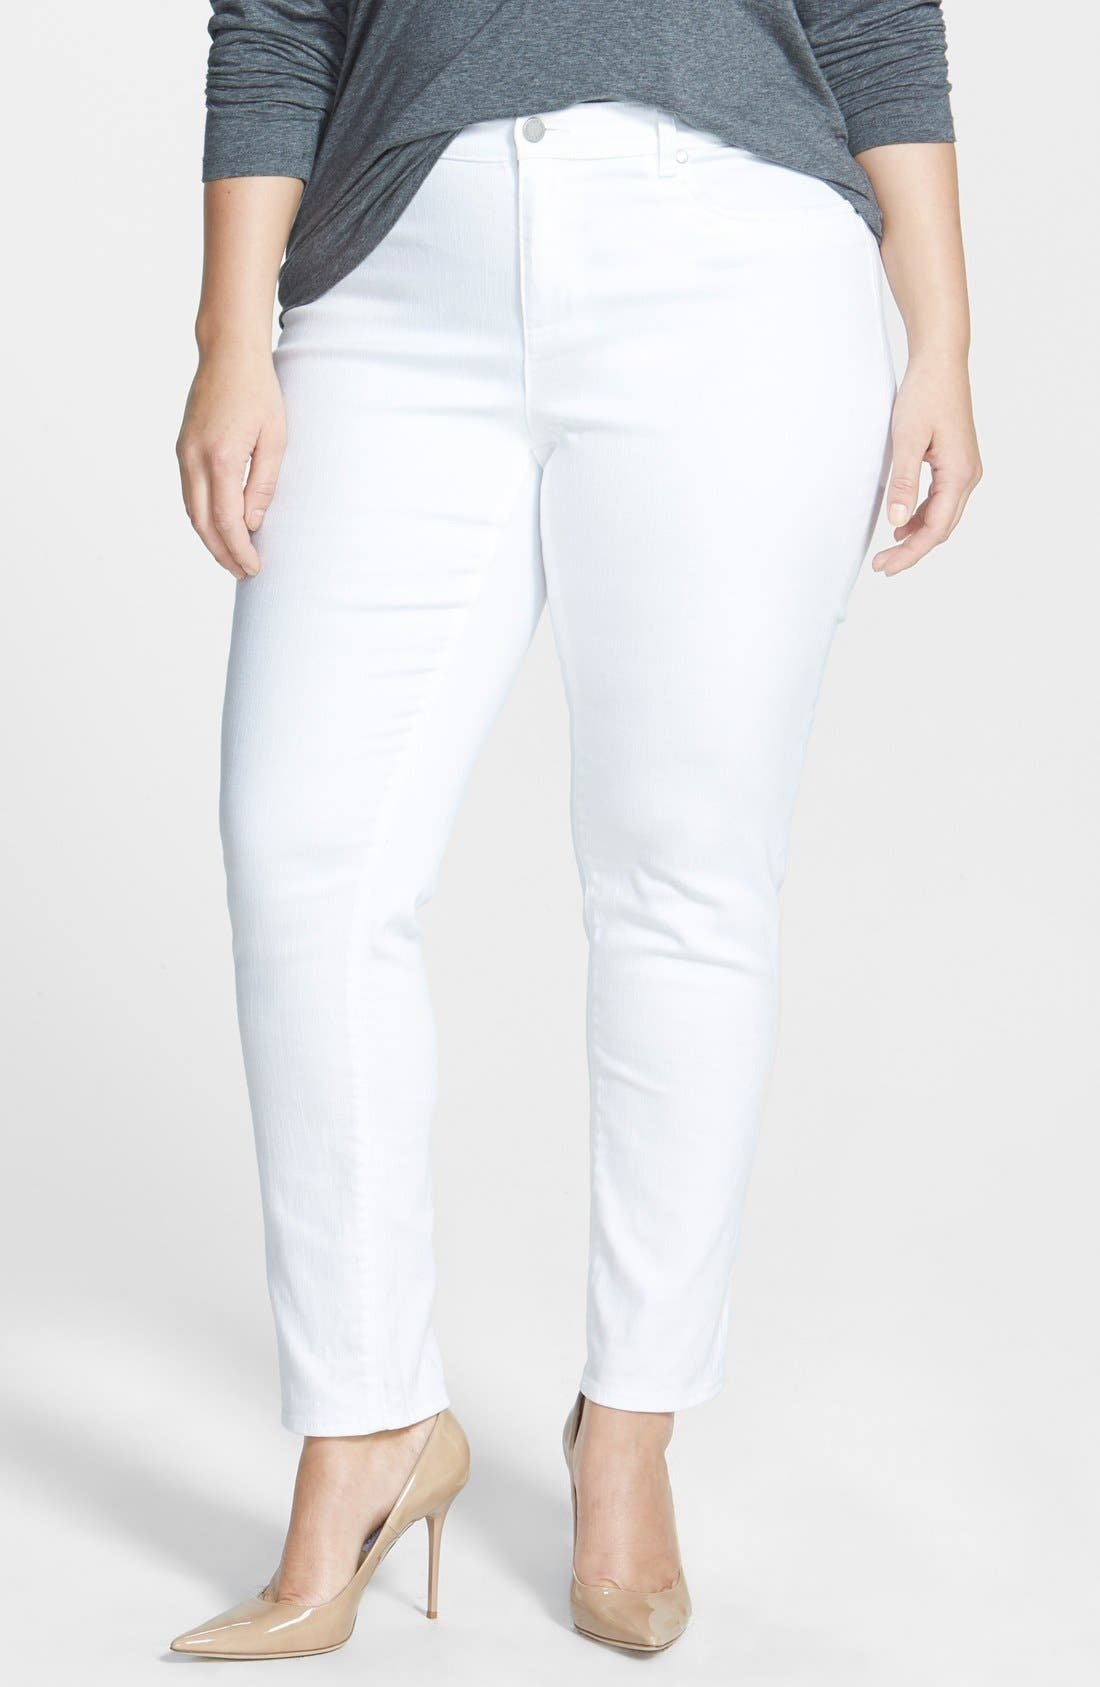 Alternate Image 1 Selected - Two by Vince Camuto Skinny Jeans (White) (Plus Size)